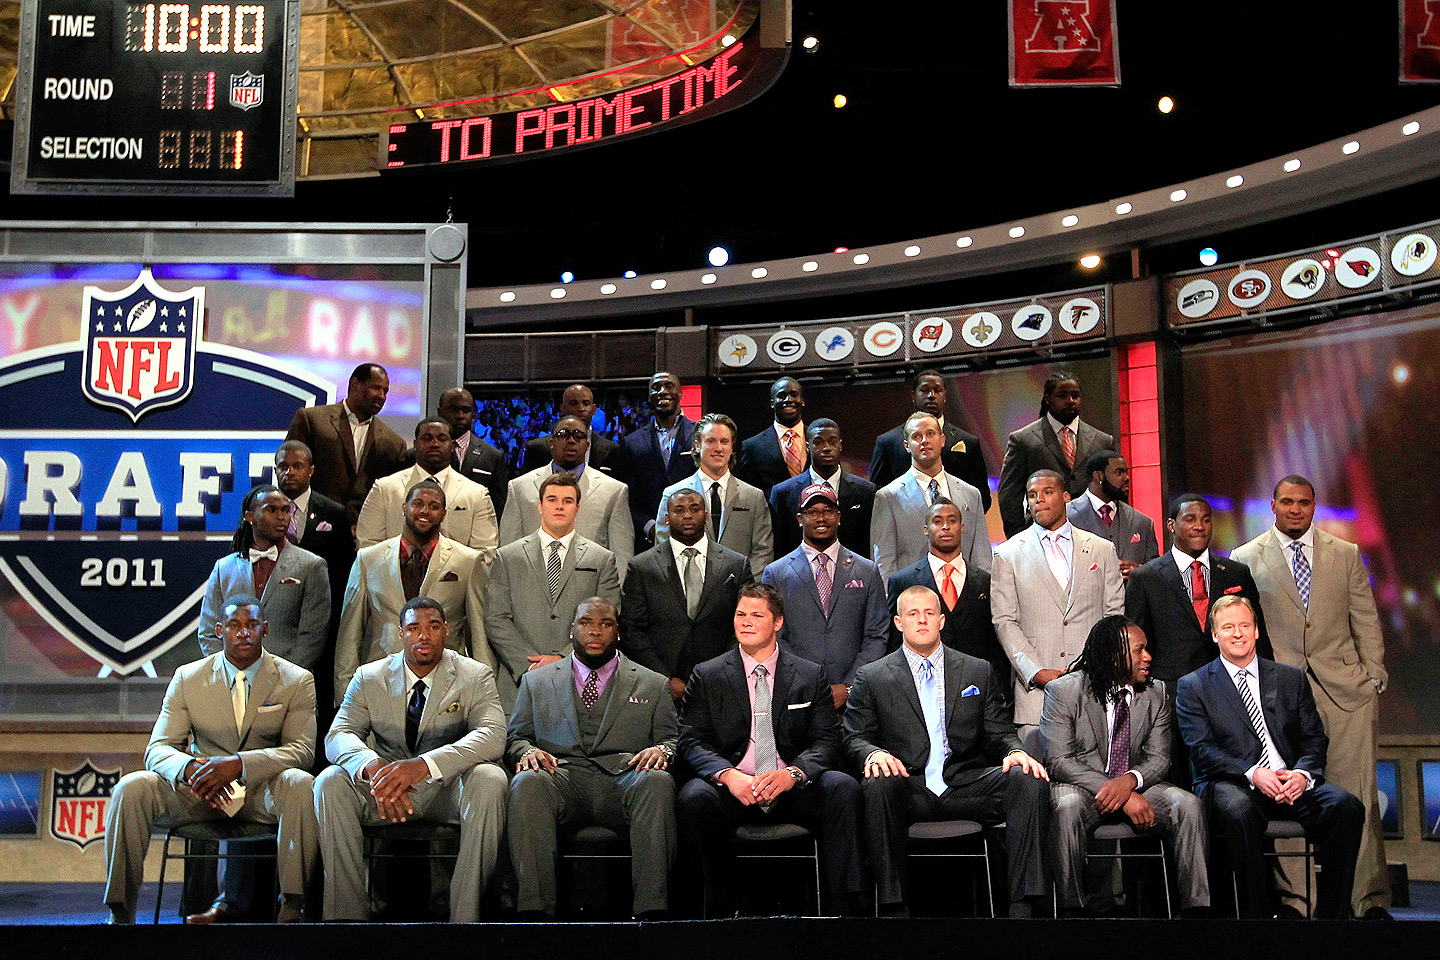 2011 Draft class and the 2011 Pro Football Hall of Fame class